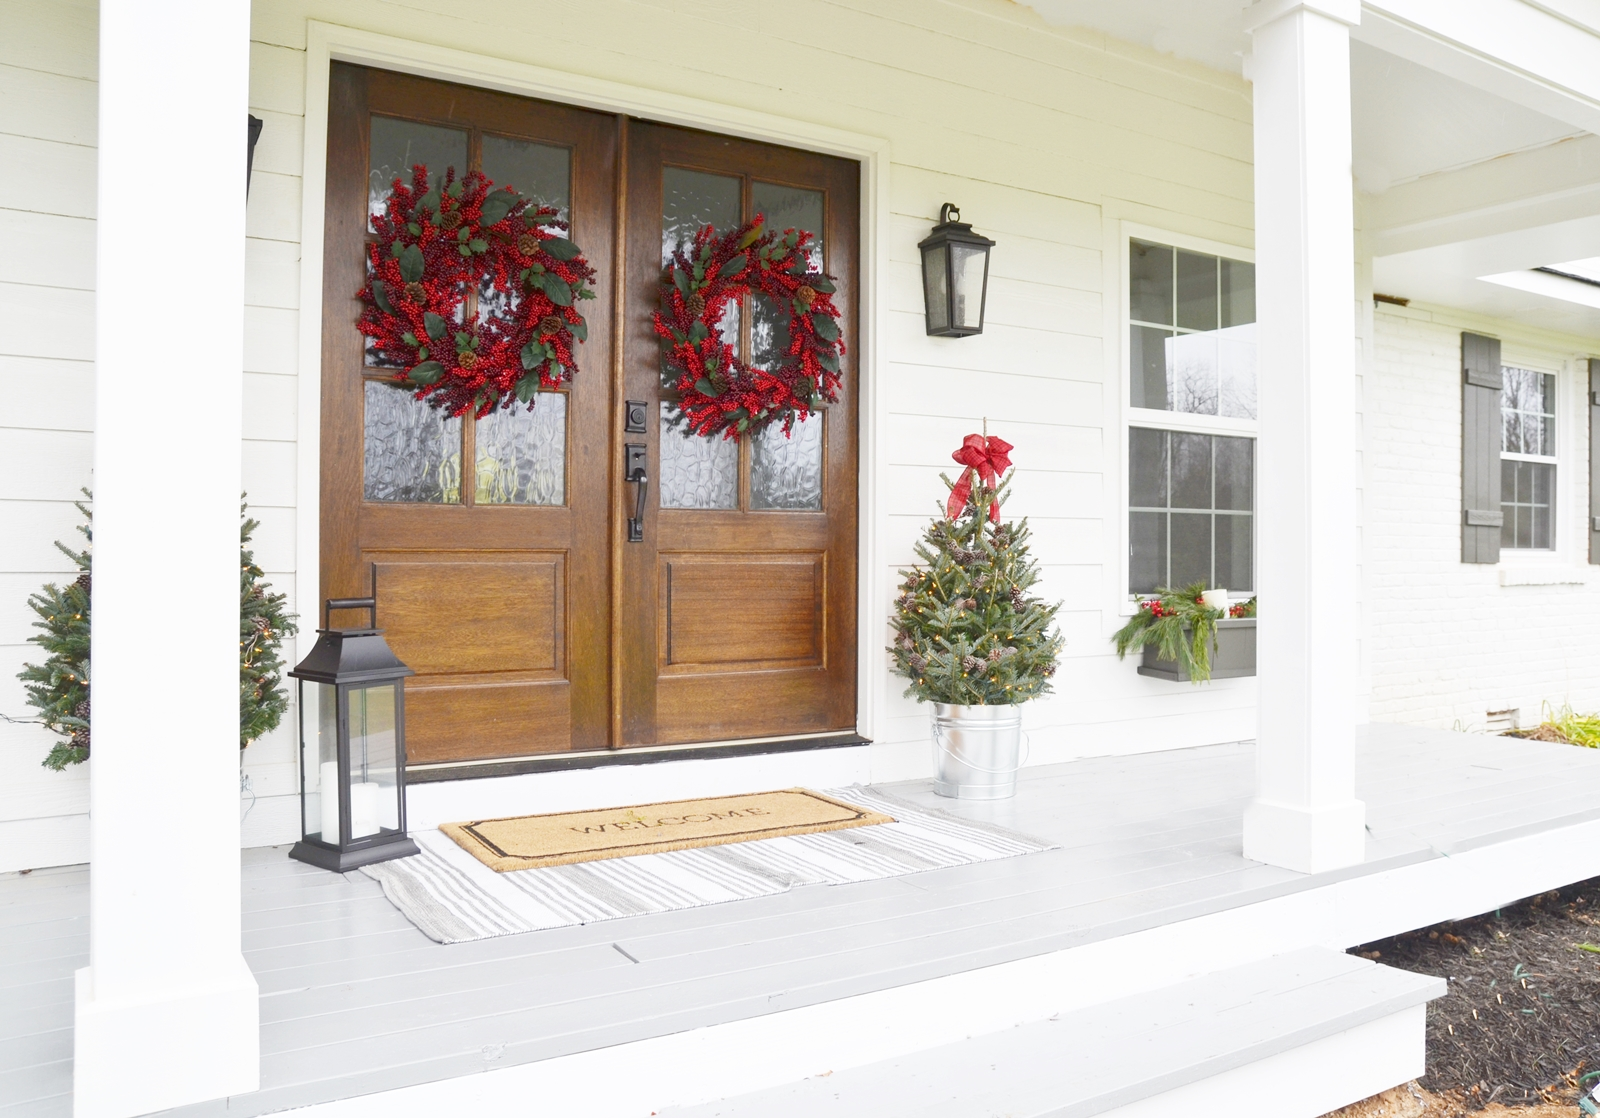 Our Farmhouse Christmas Front Porch!